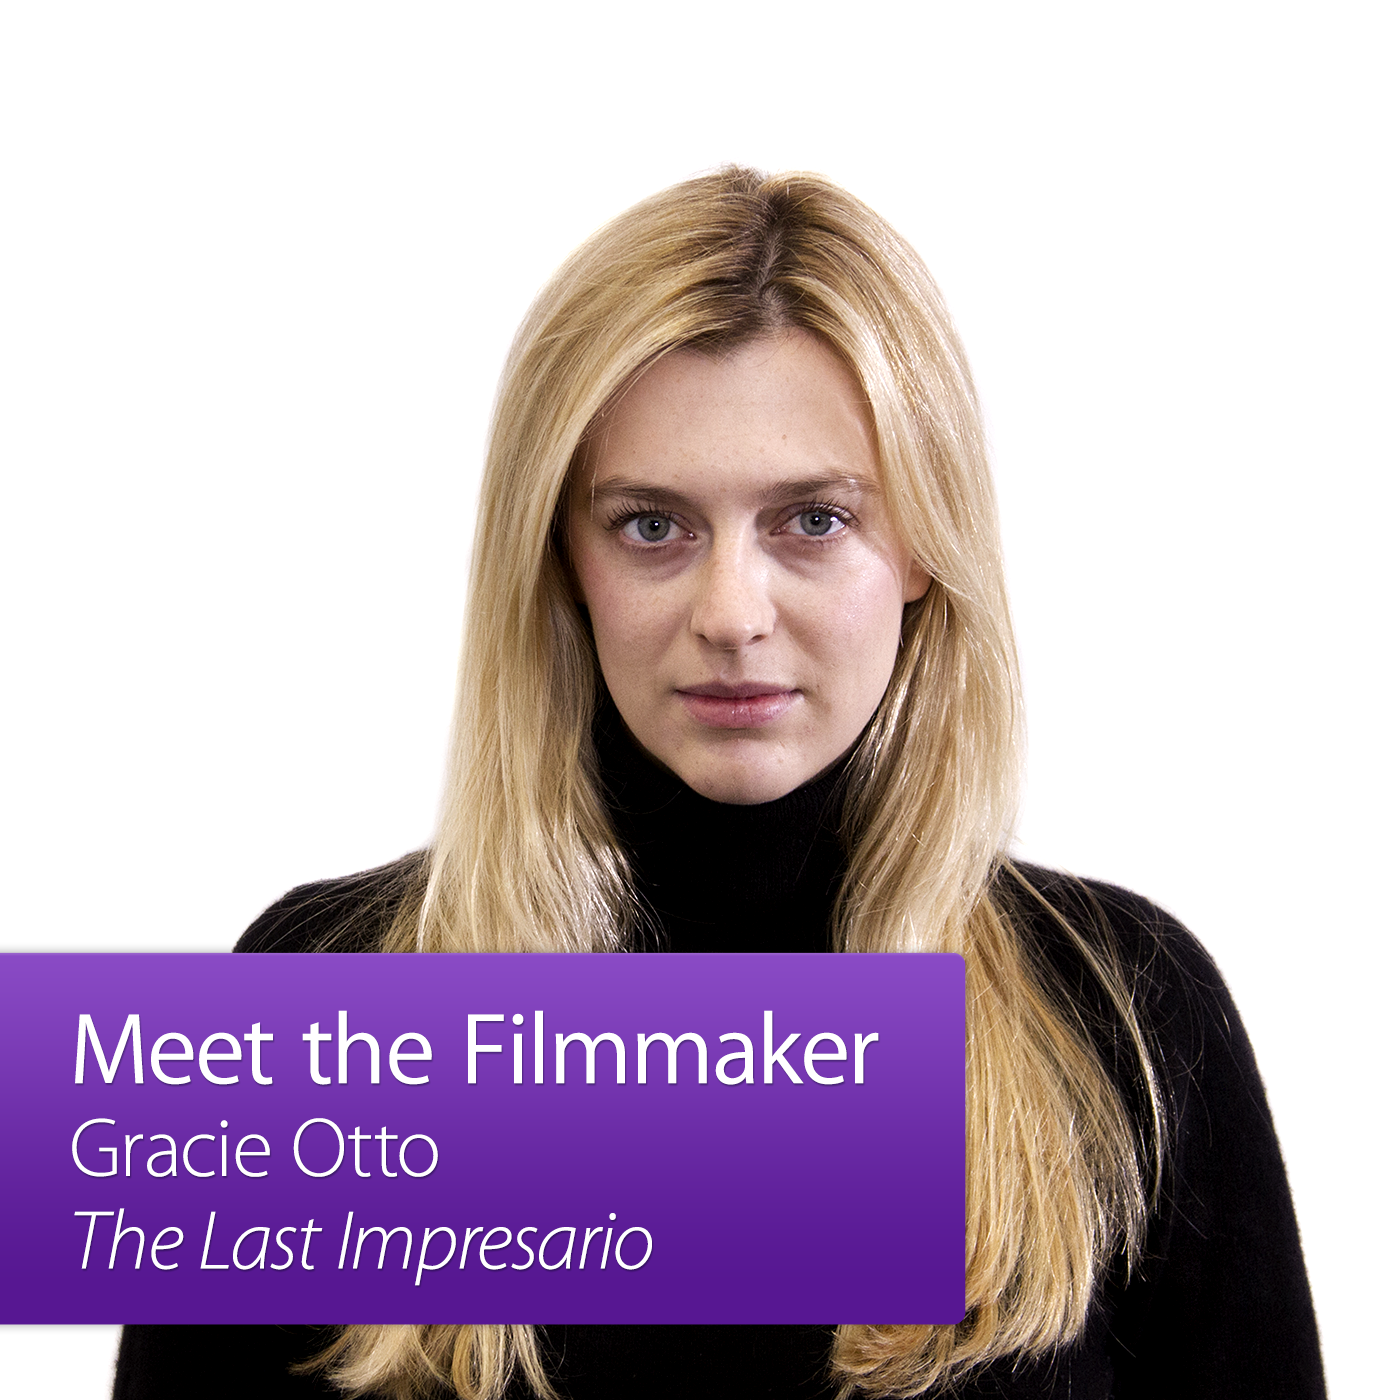 Gracie Otto: Meet the Filmmaker